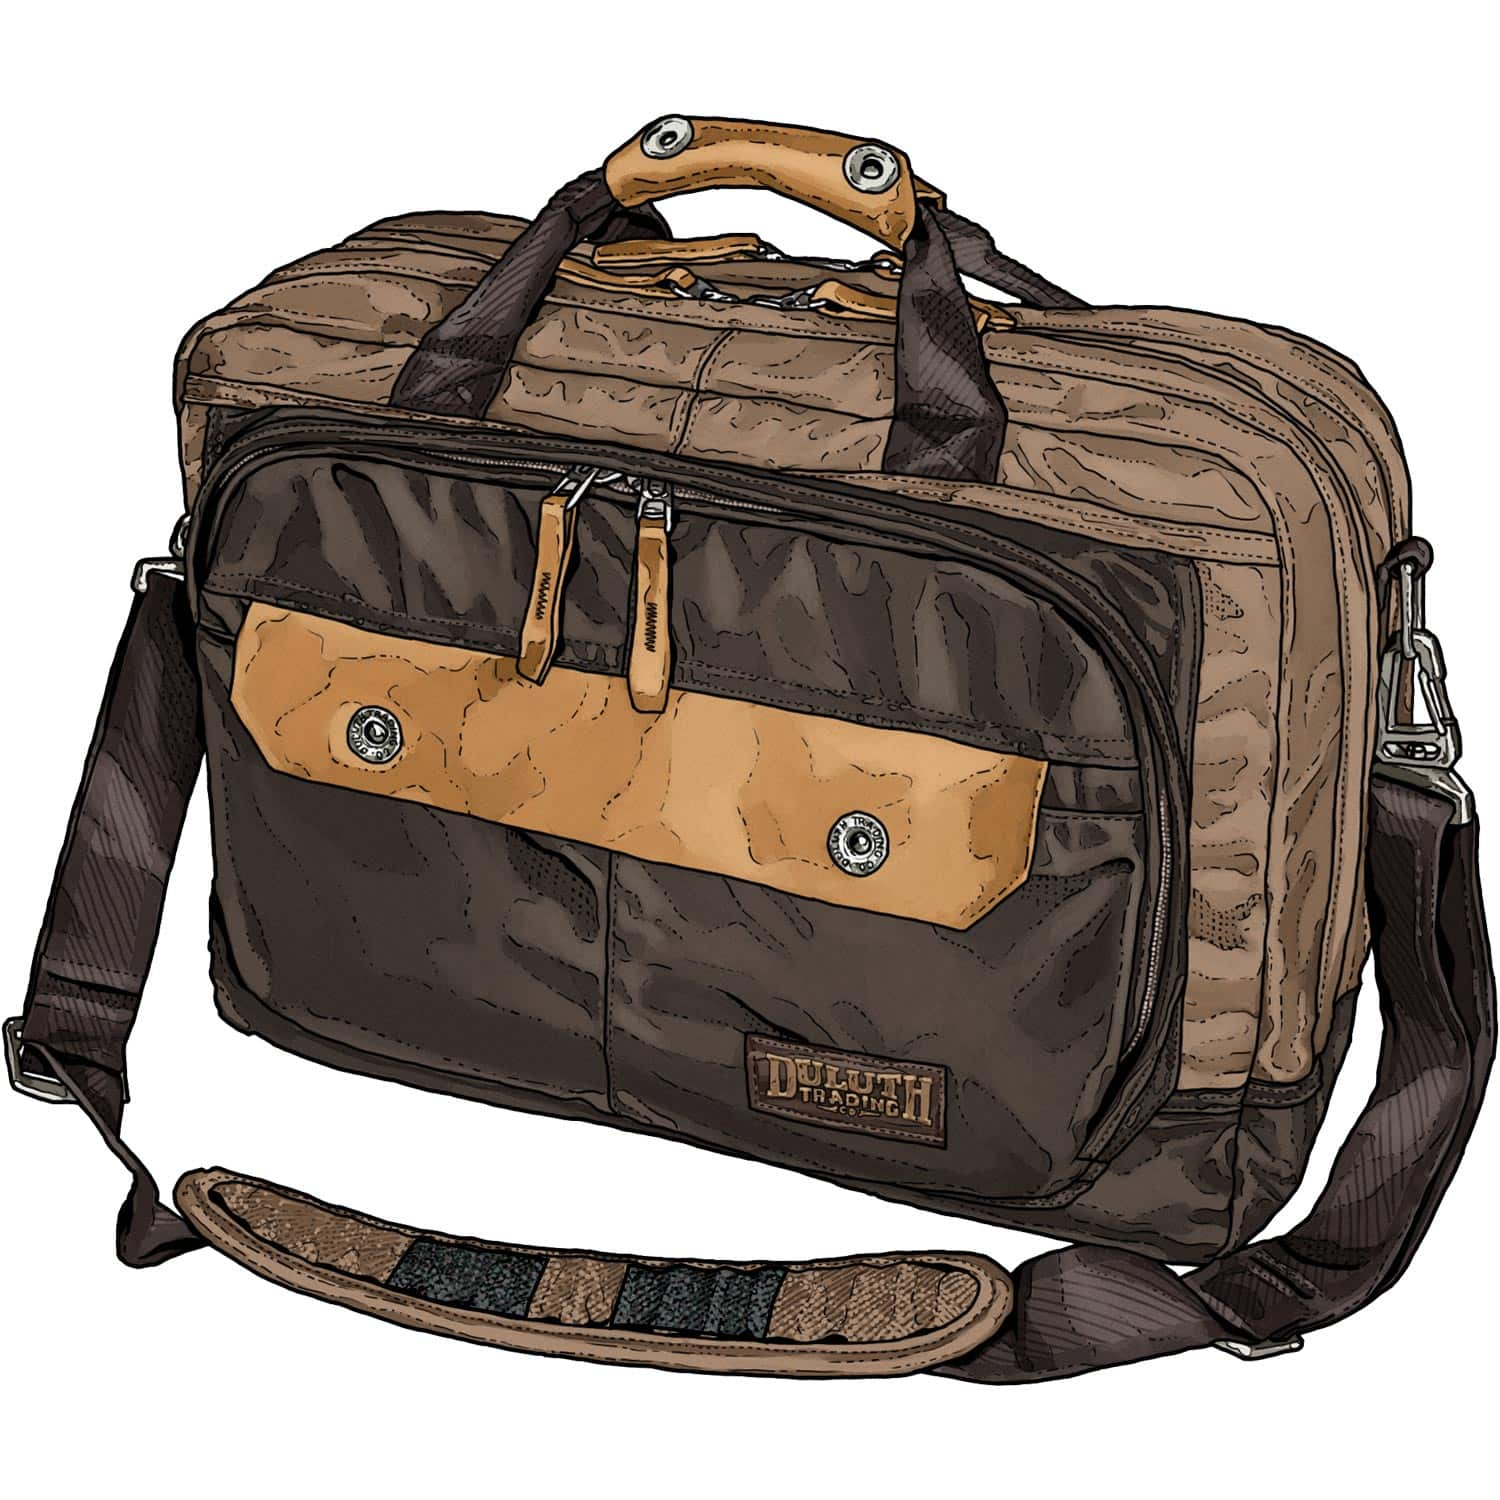 Duluth Trading Co. Large Canvas Beefcase Briefcase, $101.15 + tax, free shipping